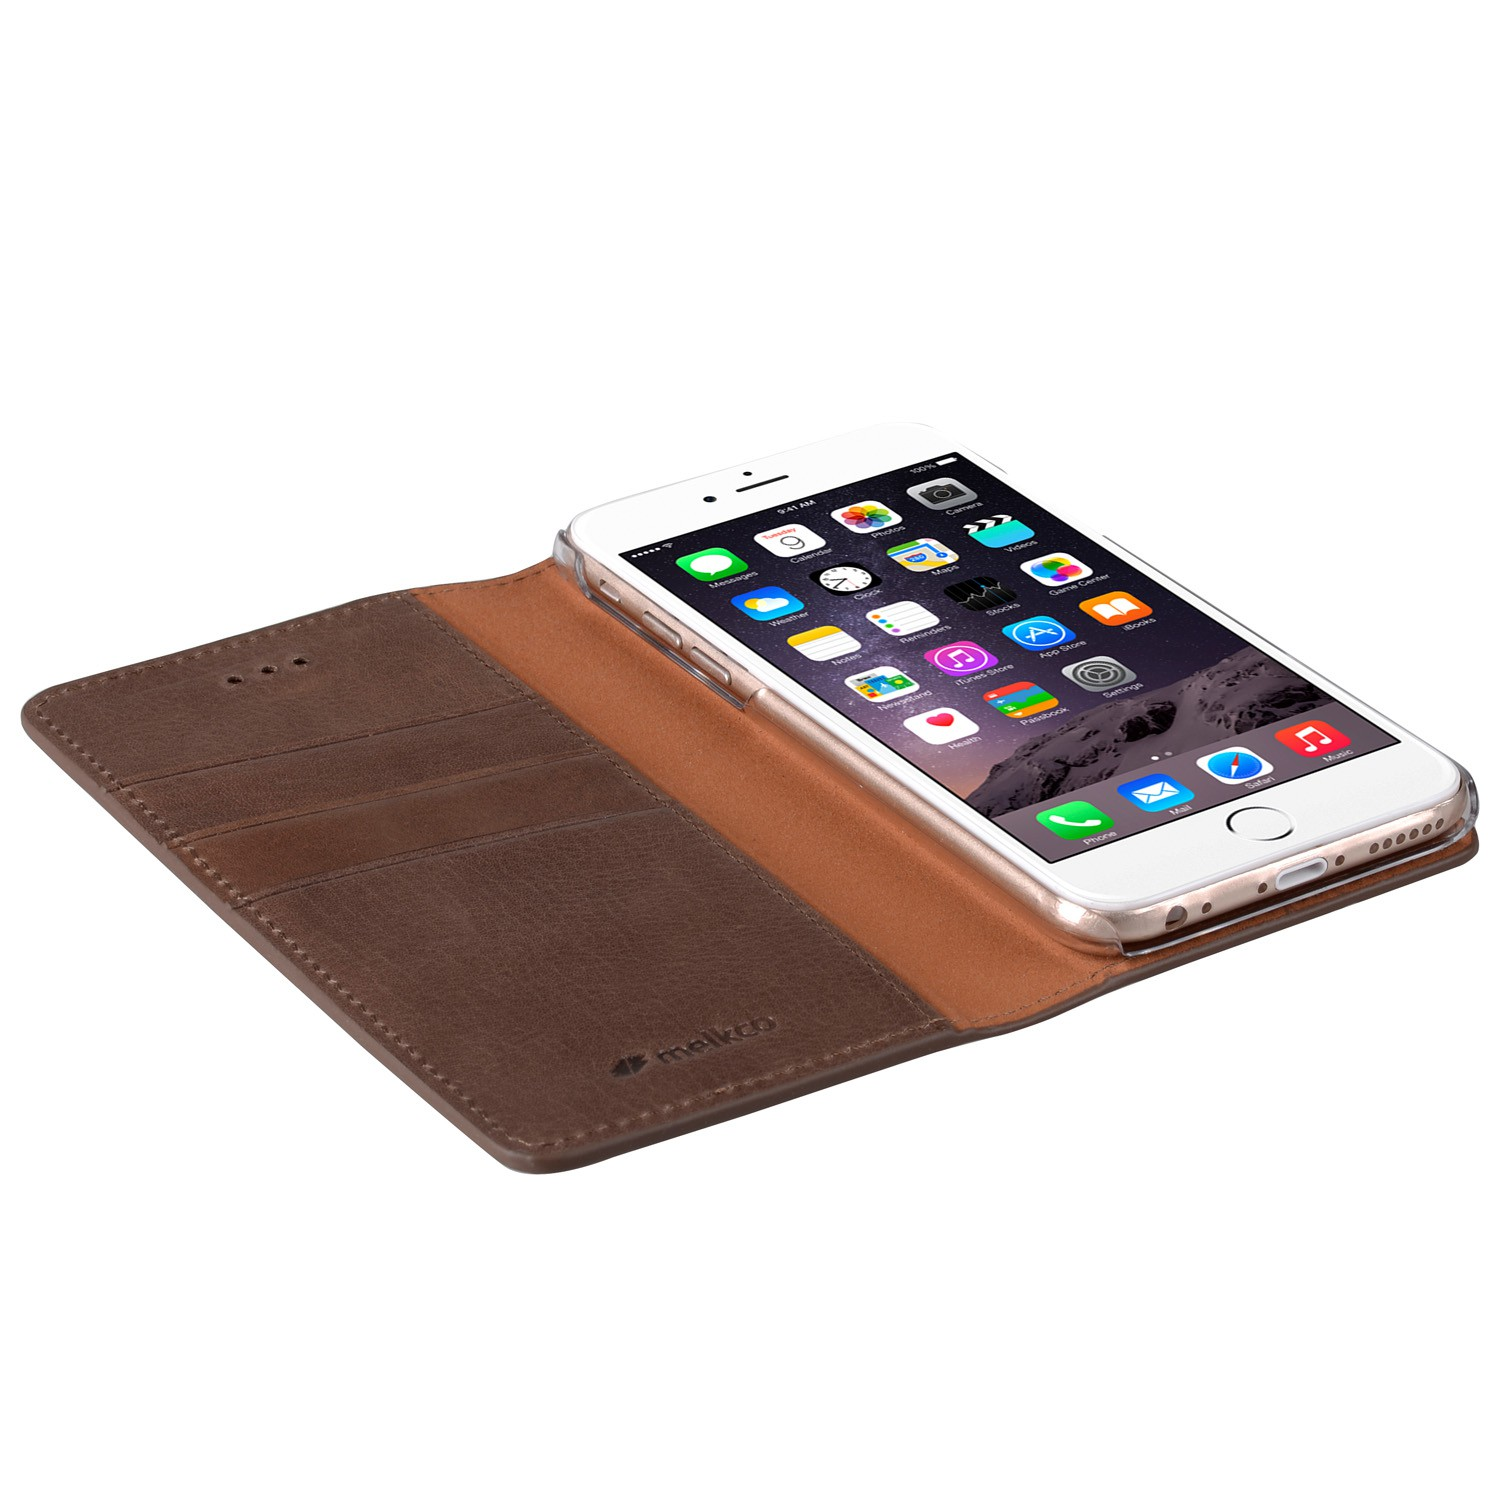 Mekco Herman Wallet Case iPhone 6/6S Brown - 3